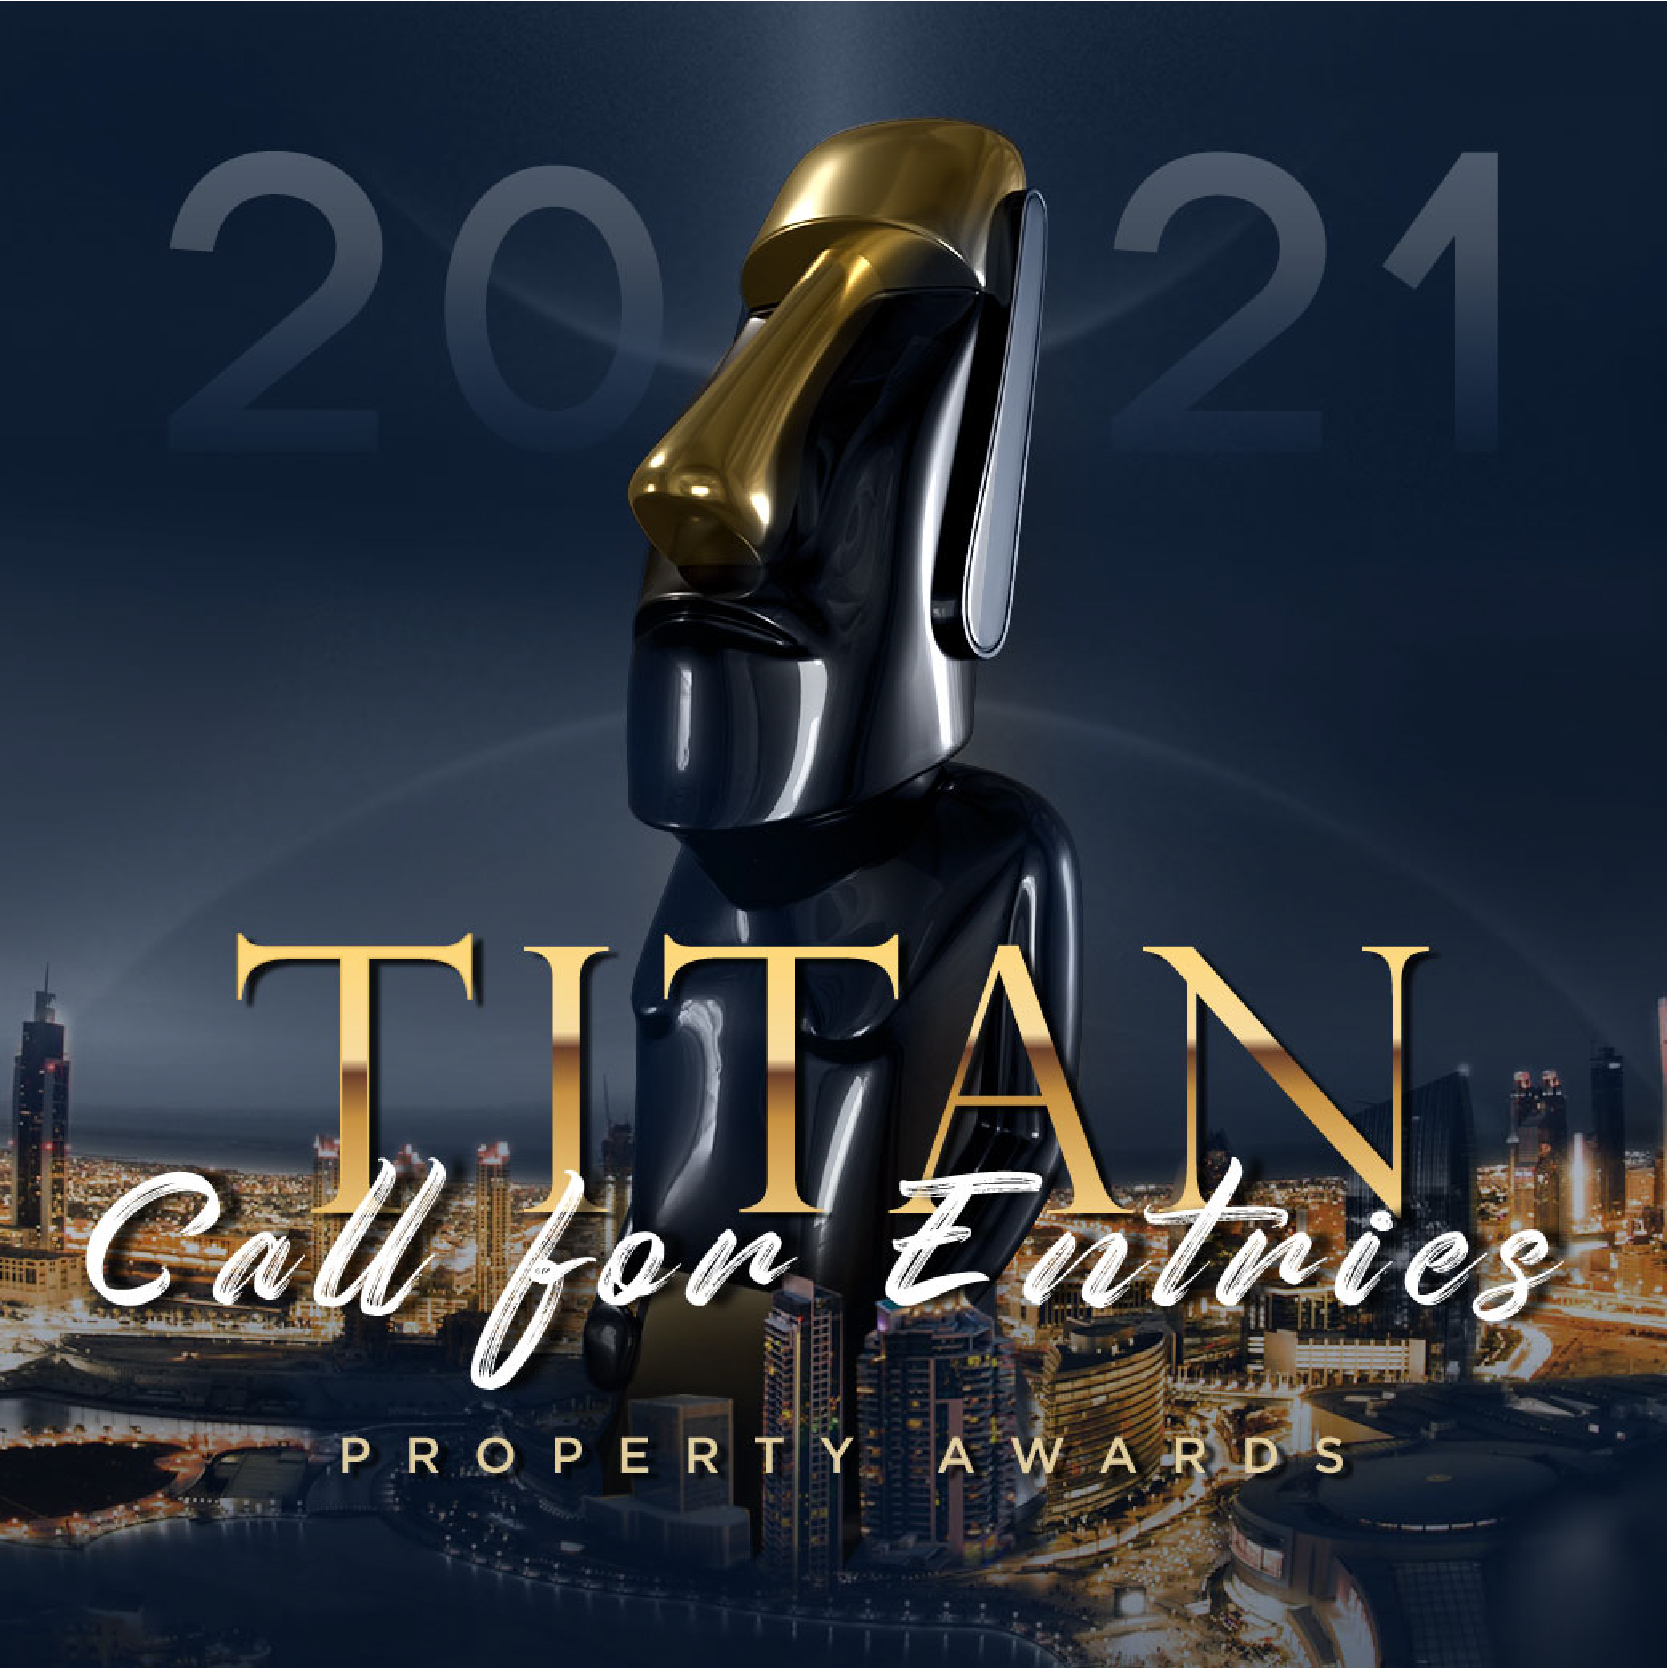 TITAN Property Awards  | 2021 Call for Entries